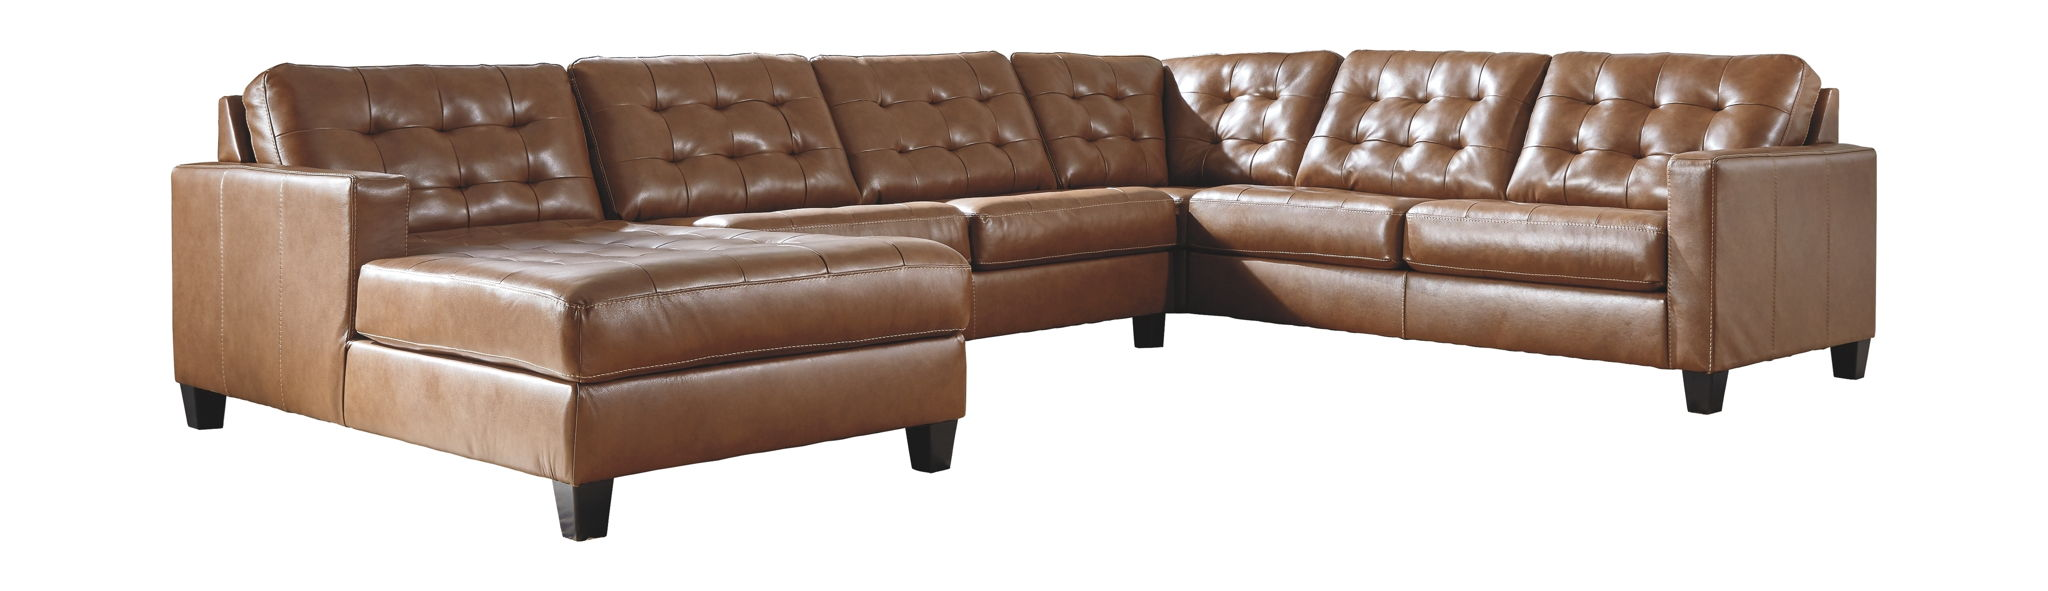 Baskove Sectional with Chaise